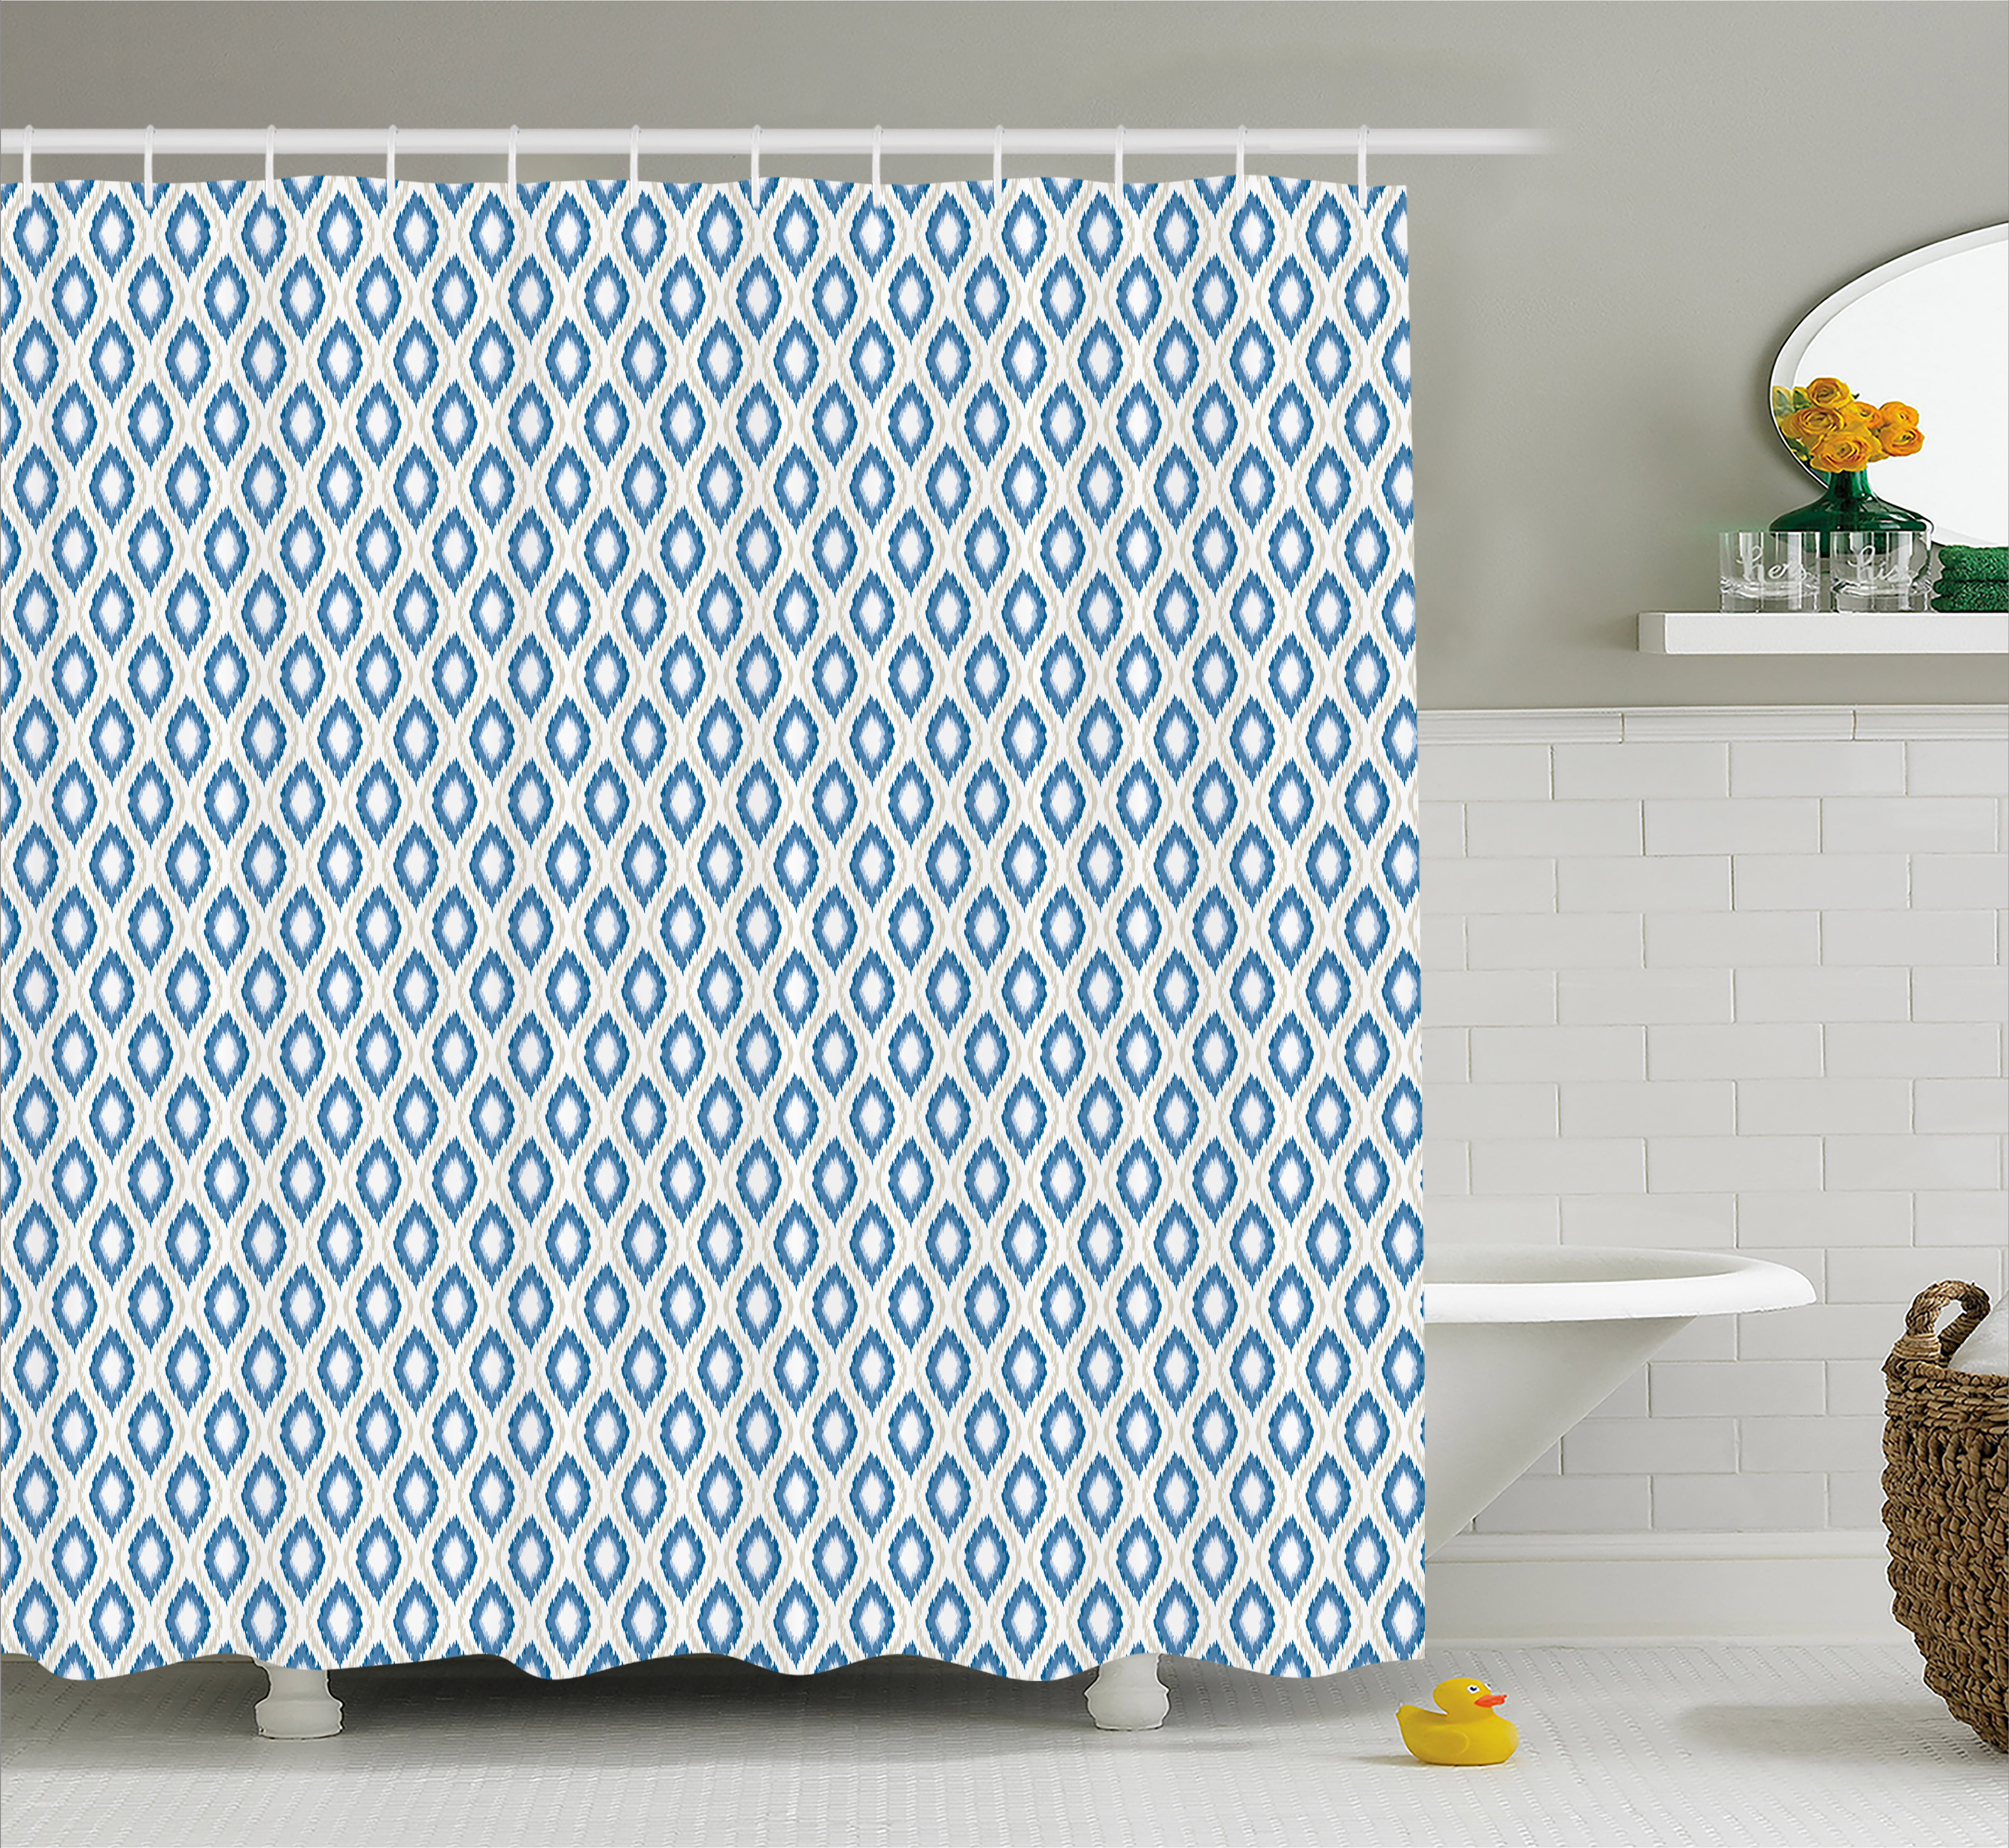 Ikat Shower Curtain, Nautical Inspired Abstract Geometrical Shapes Rhombus Lines Squares Pattern, Fabric Bathroom Set with Hooks, 69W X 70L Inches, Blue Beige White, by Ambesonne